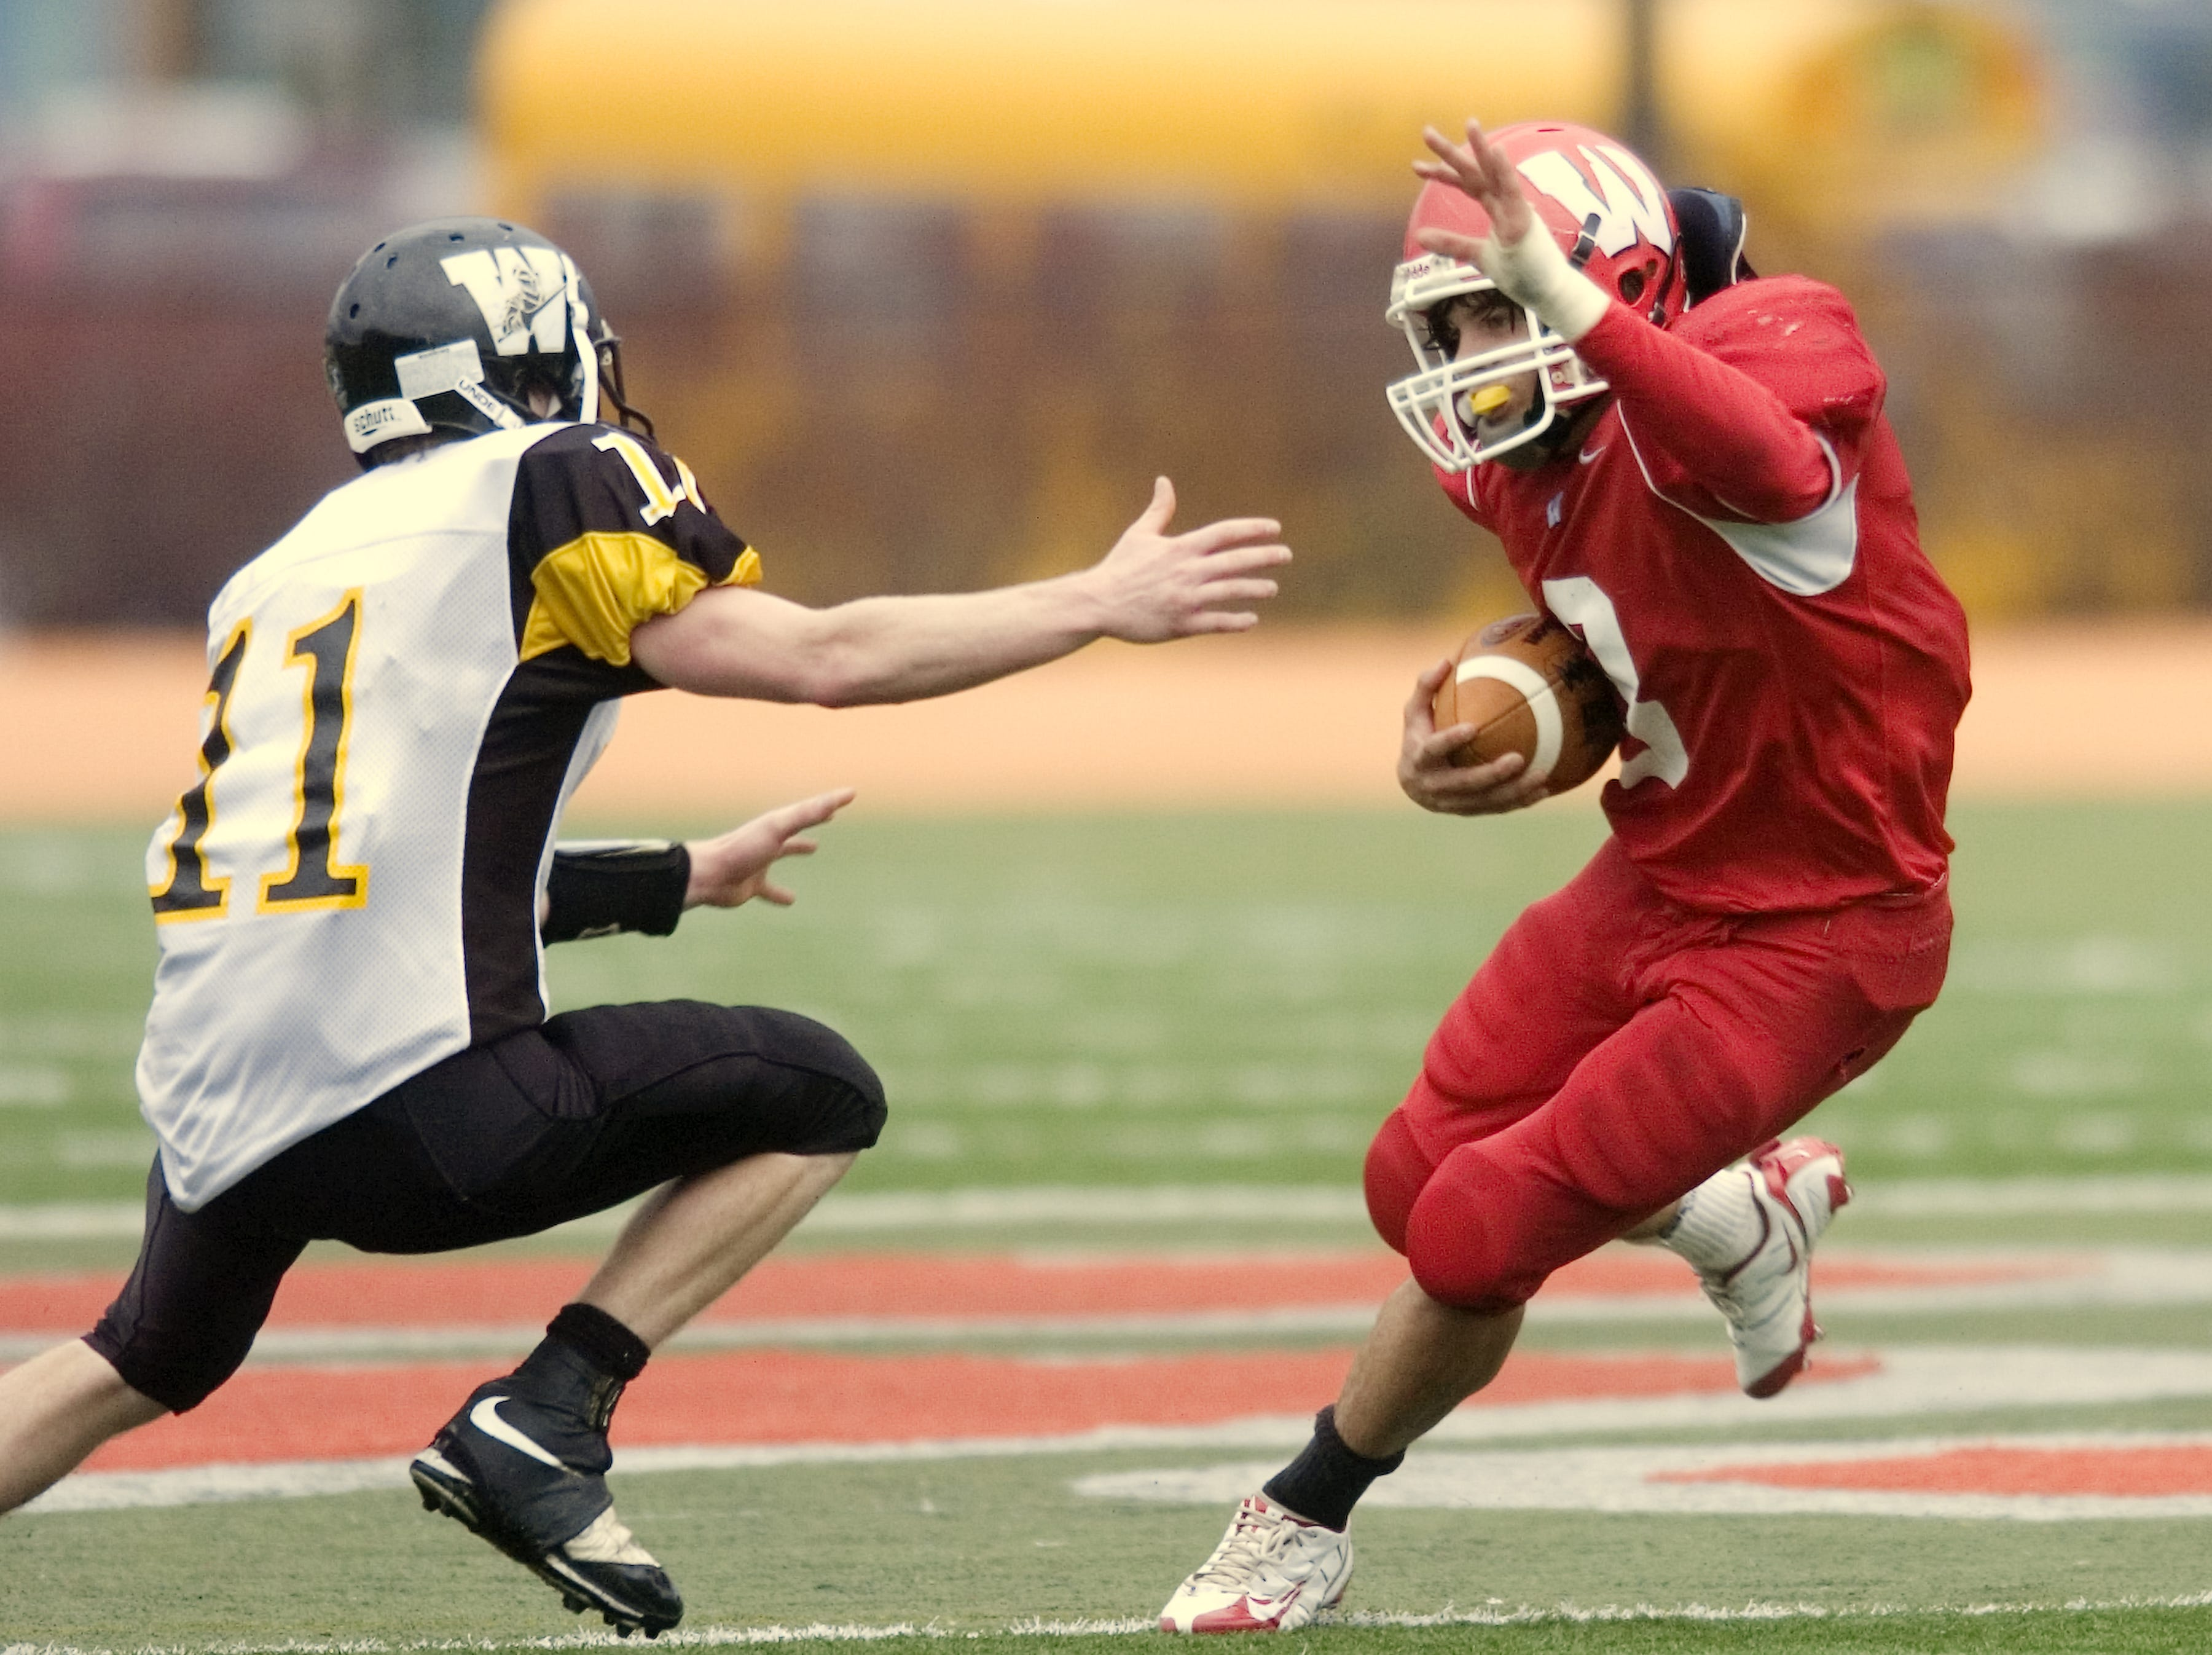 From 2008: Waverly's Brian Sewalt, right, dodges Windsor's Matt Murray in the fourth quarter of Saturday's game at Ty Cobb Stadium.